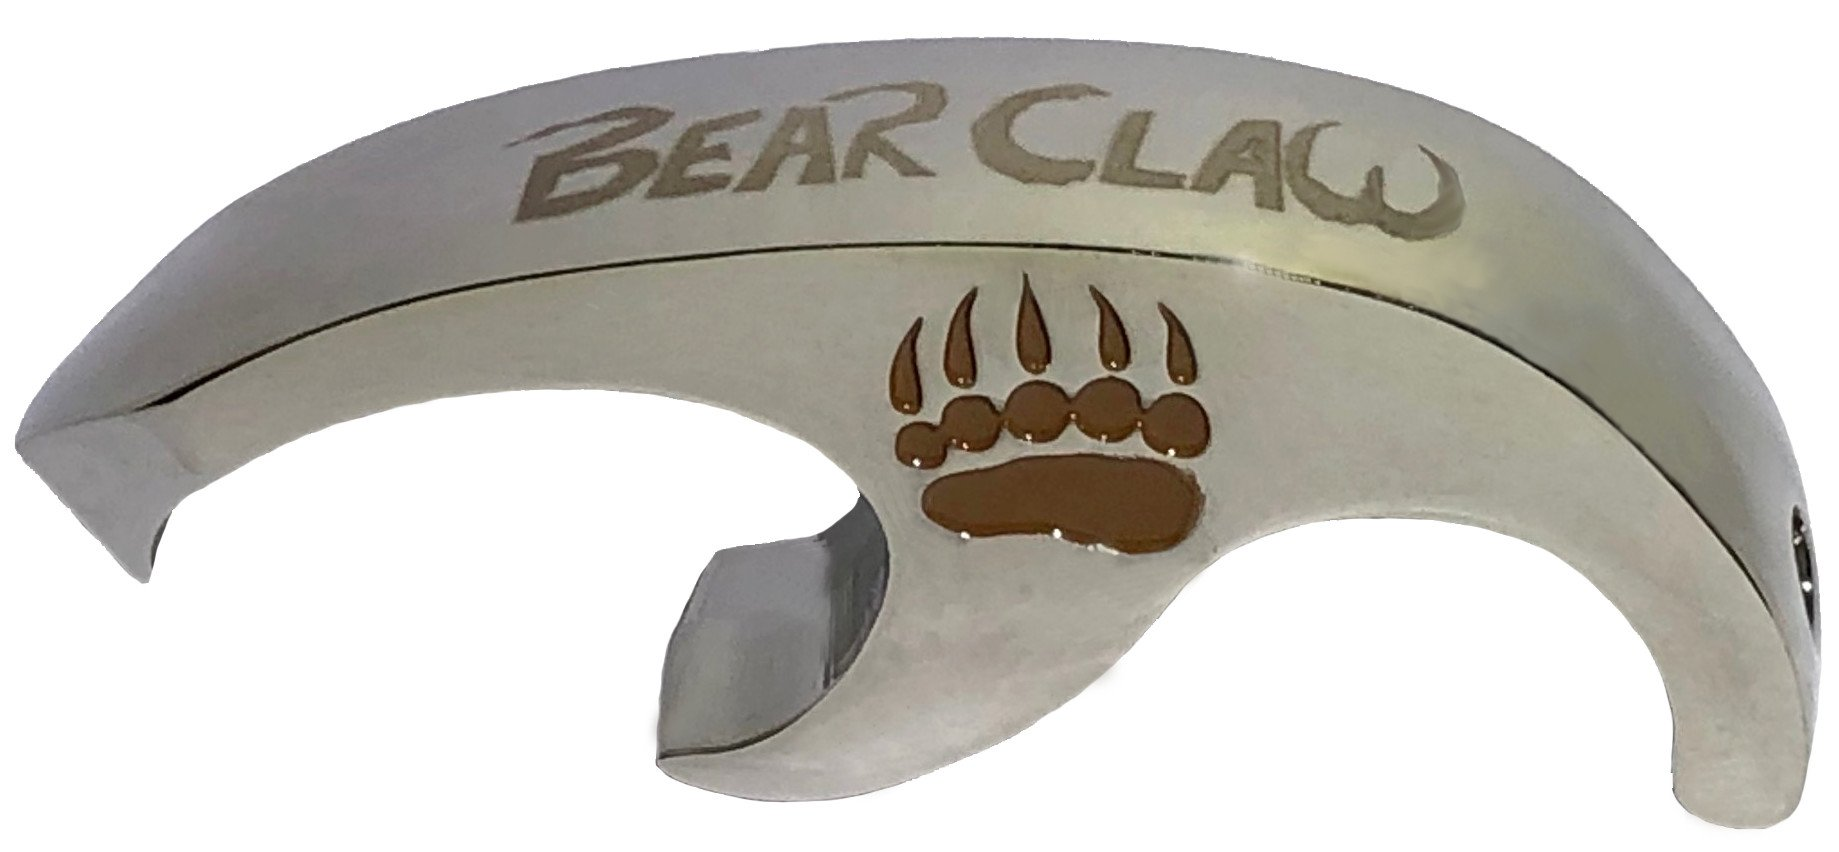 Bear Claw Shotgun Tool and Bottle Opener | Fits on a Keychain | Perfect for Parties, Tailgates, Barbeques, and Beer Lovers | Chug like a Pro, make Shotgunning easy! by Bear Claw Openers